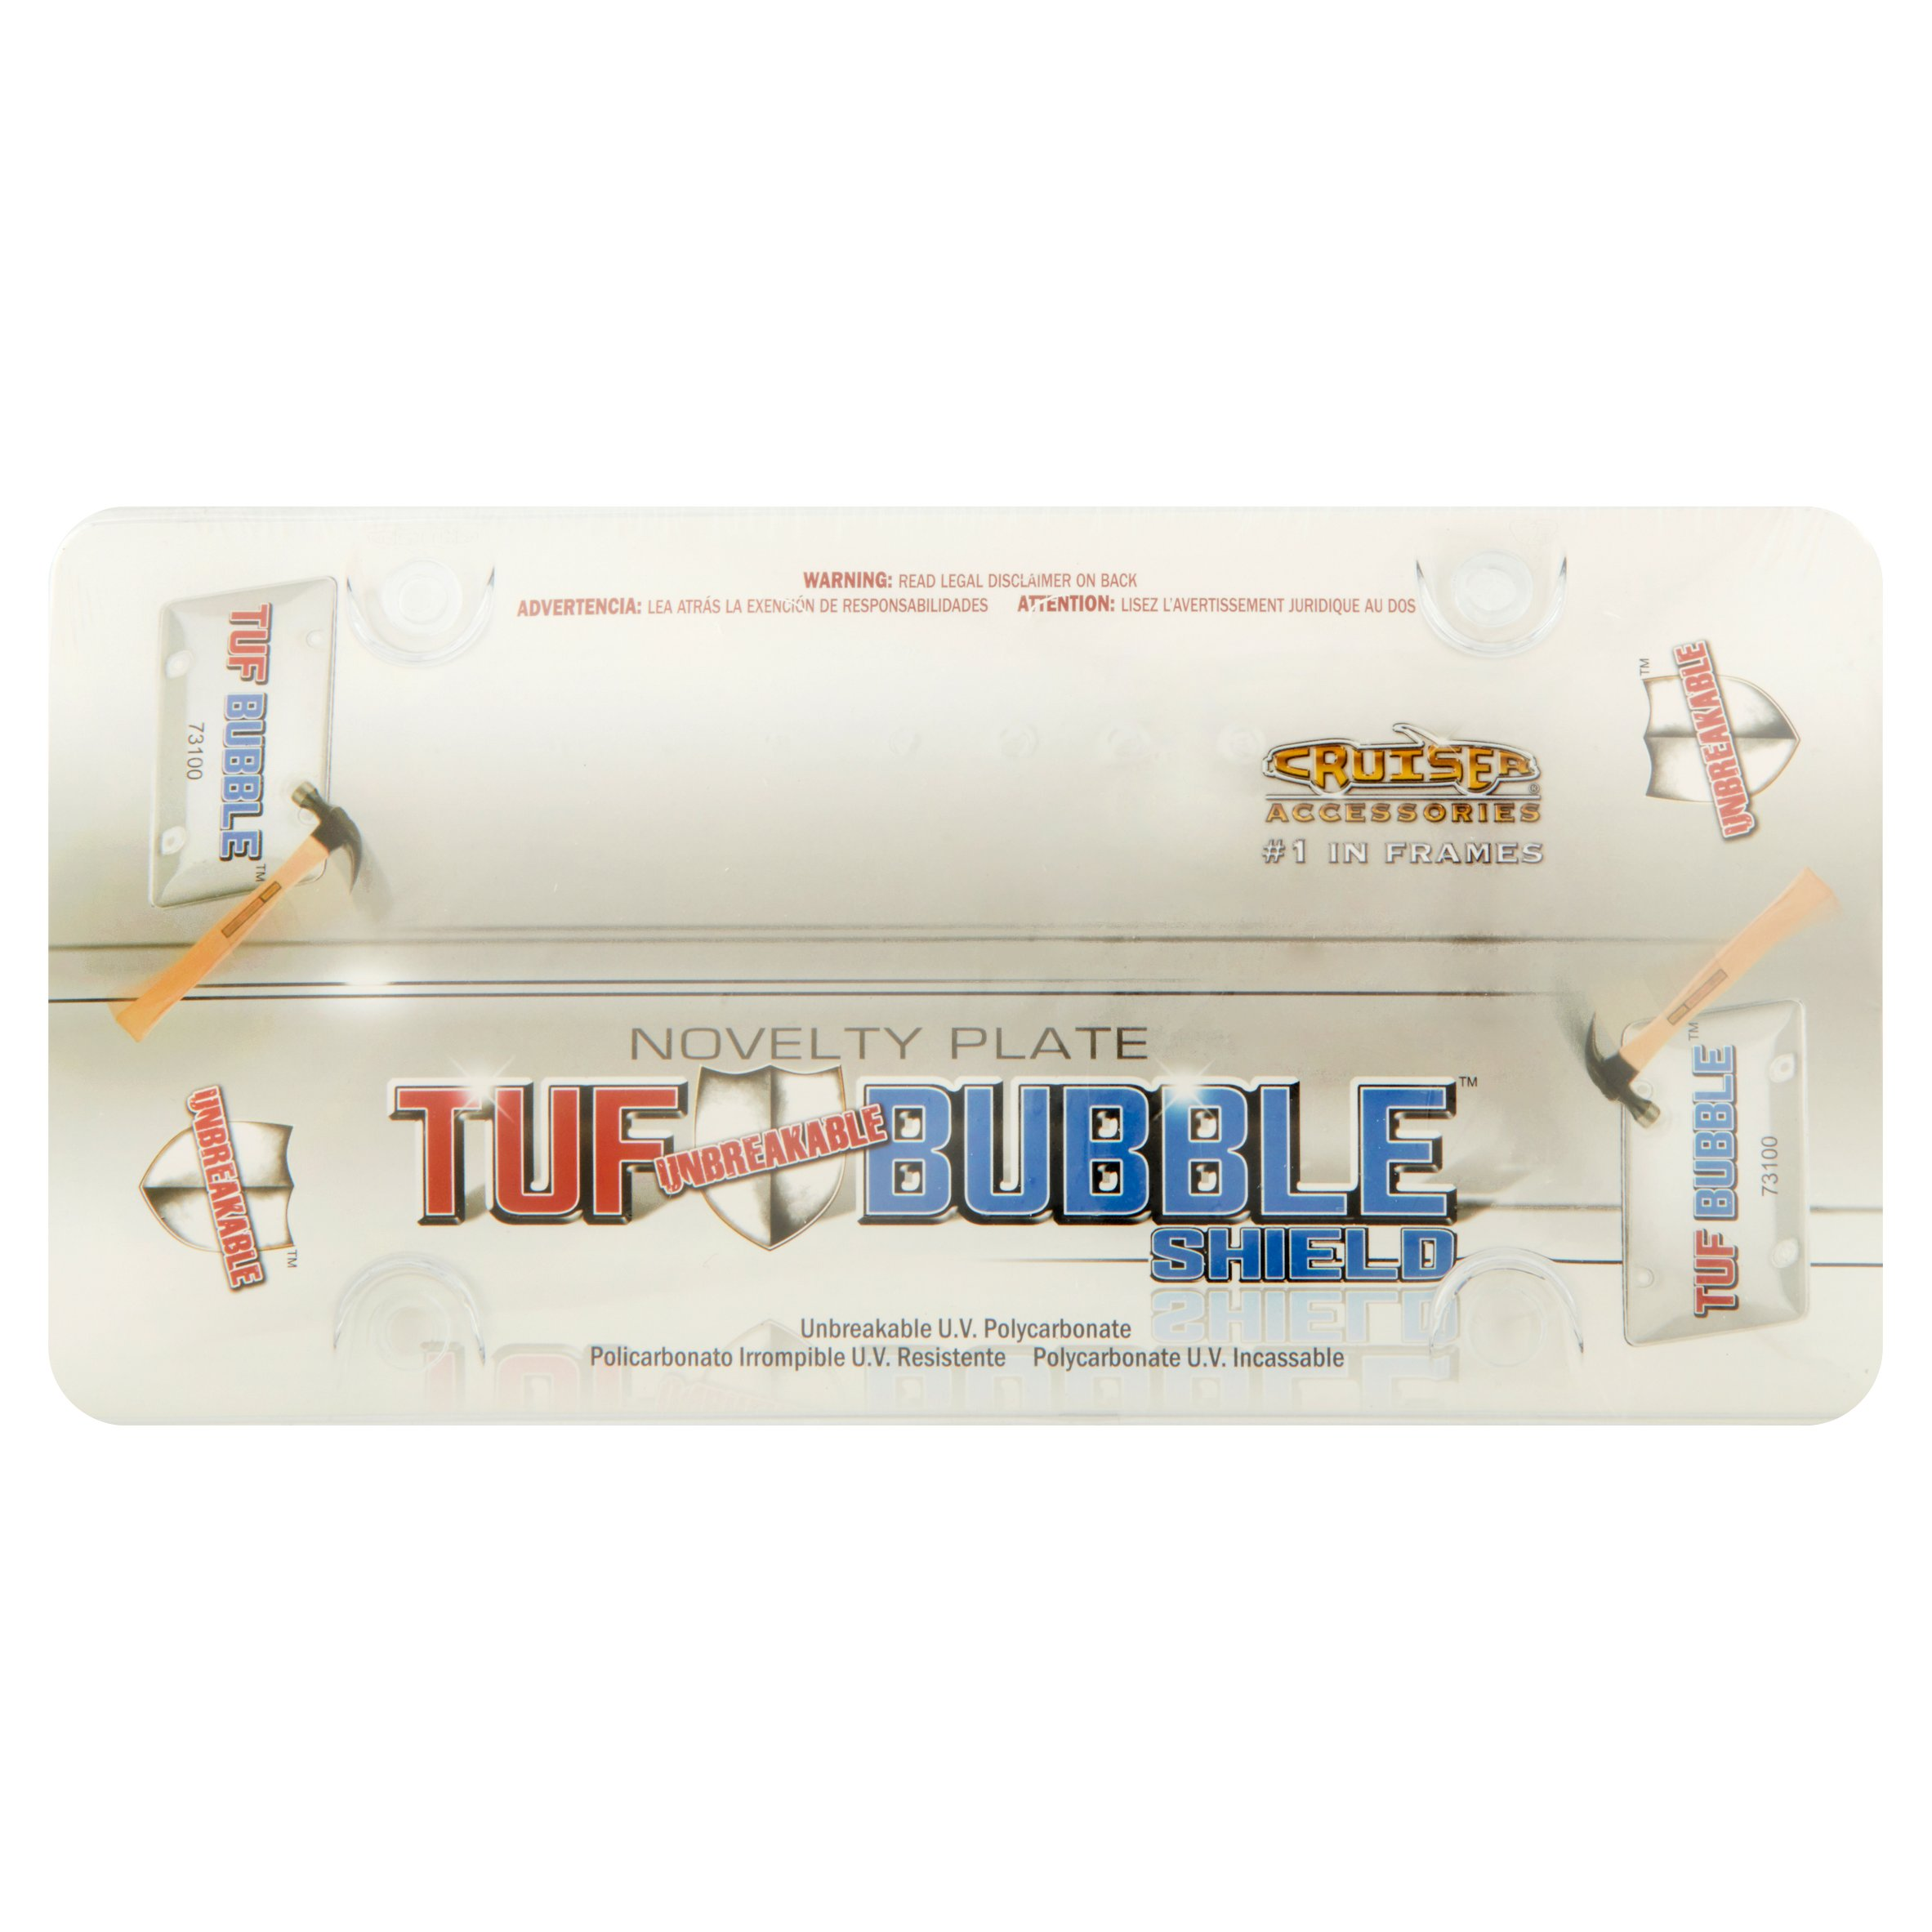 Cruiser Accessories Tuf Unbreakable Bubble Shield Novelty Plate